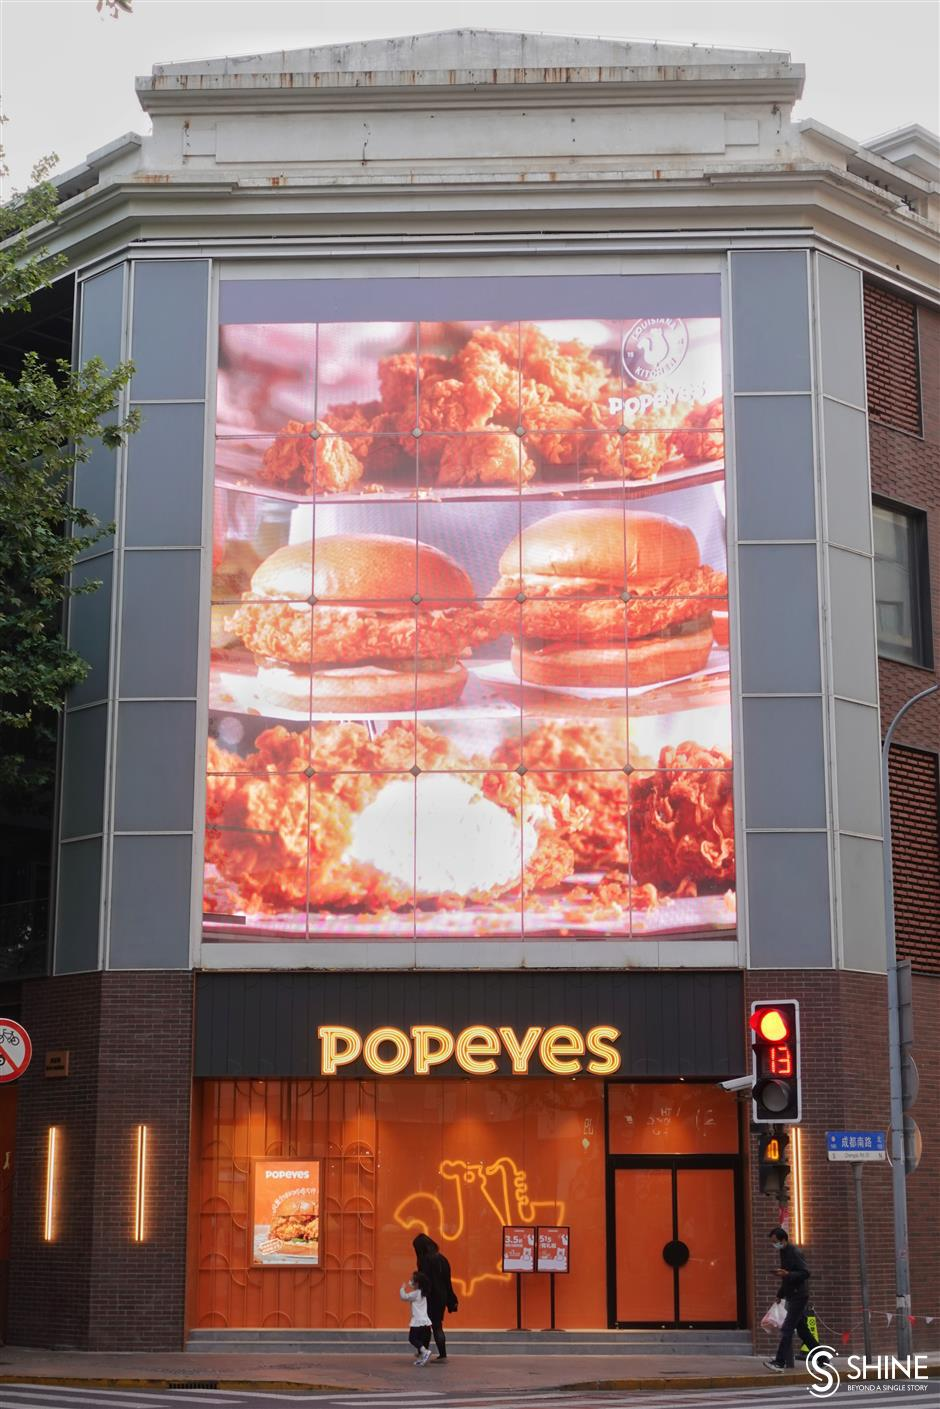 Popeyes to open first   Chinese mainland store in Shanghai next week